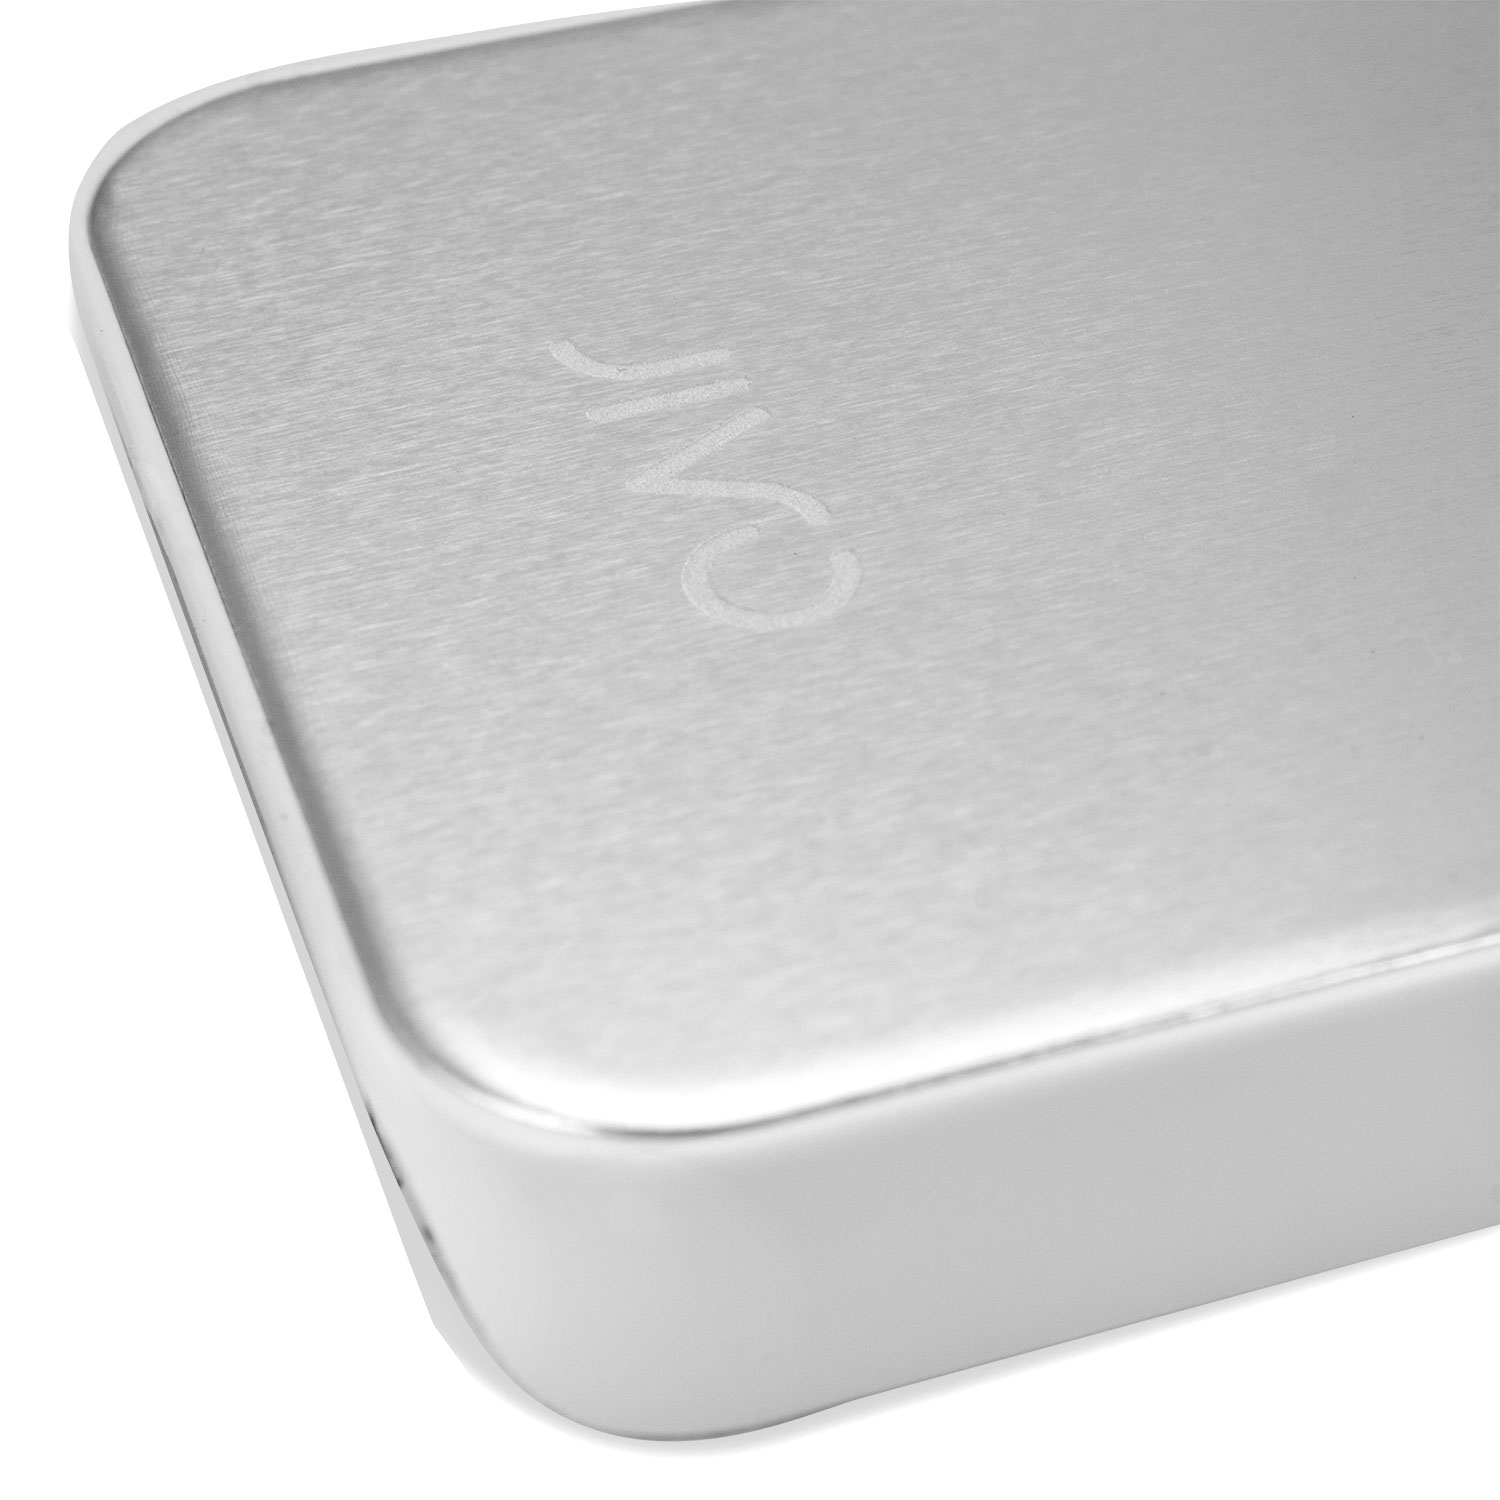 "Jivo iPhone 5 ""Alu-Case"" One-Piece Snap-On iPhone Case - Silver"